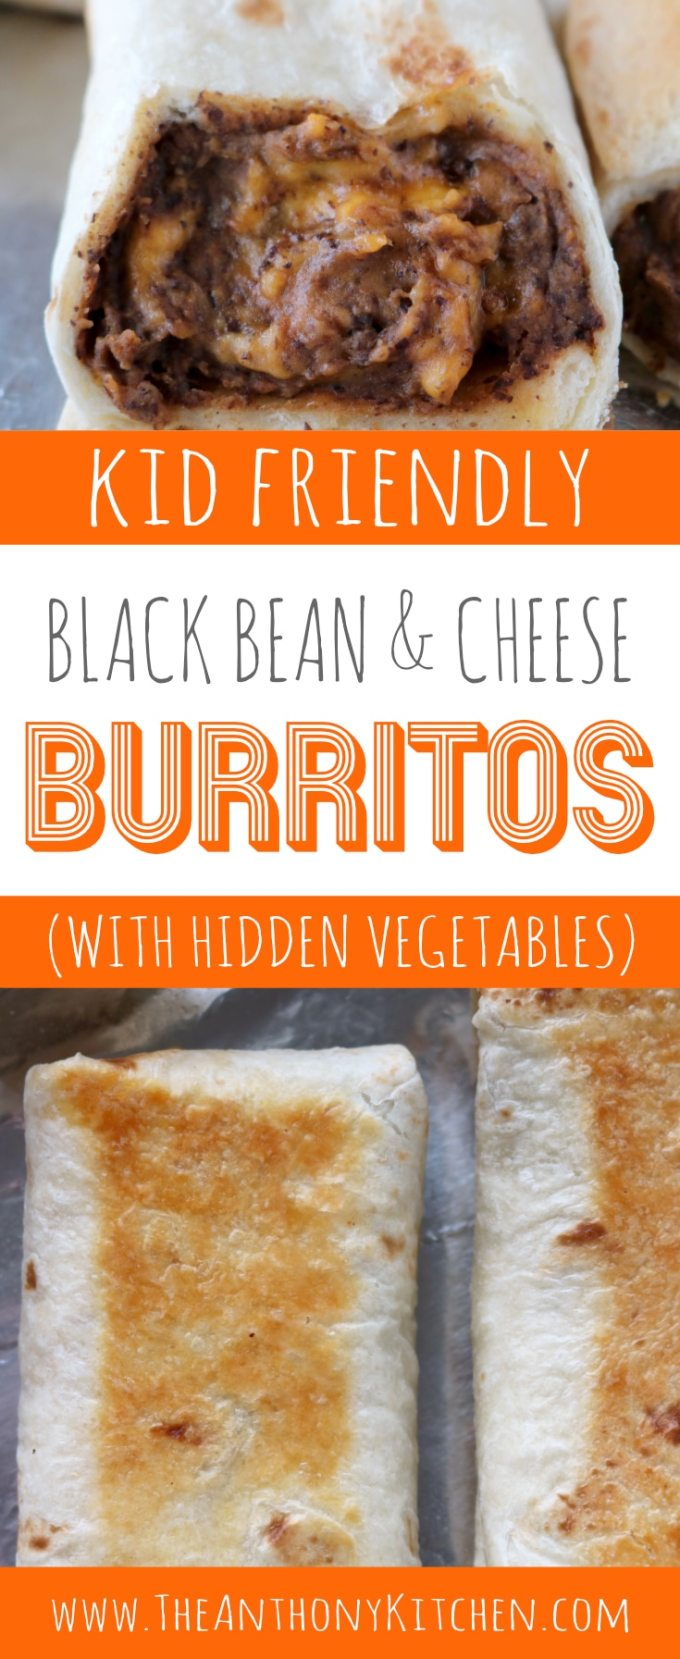 KID FRIENDLY BURRITO RECIPE WITH BLACK BEANS, CHEESE, AND HIDDEN VEGETABLES